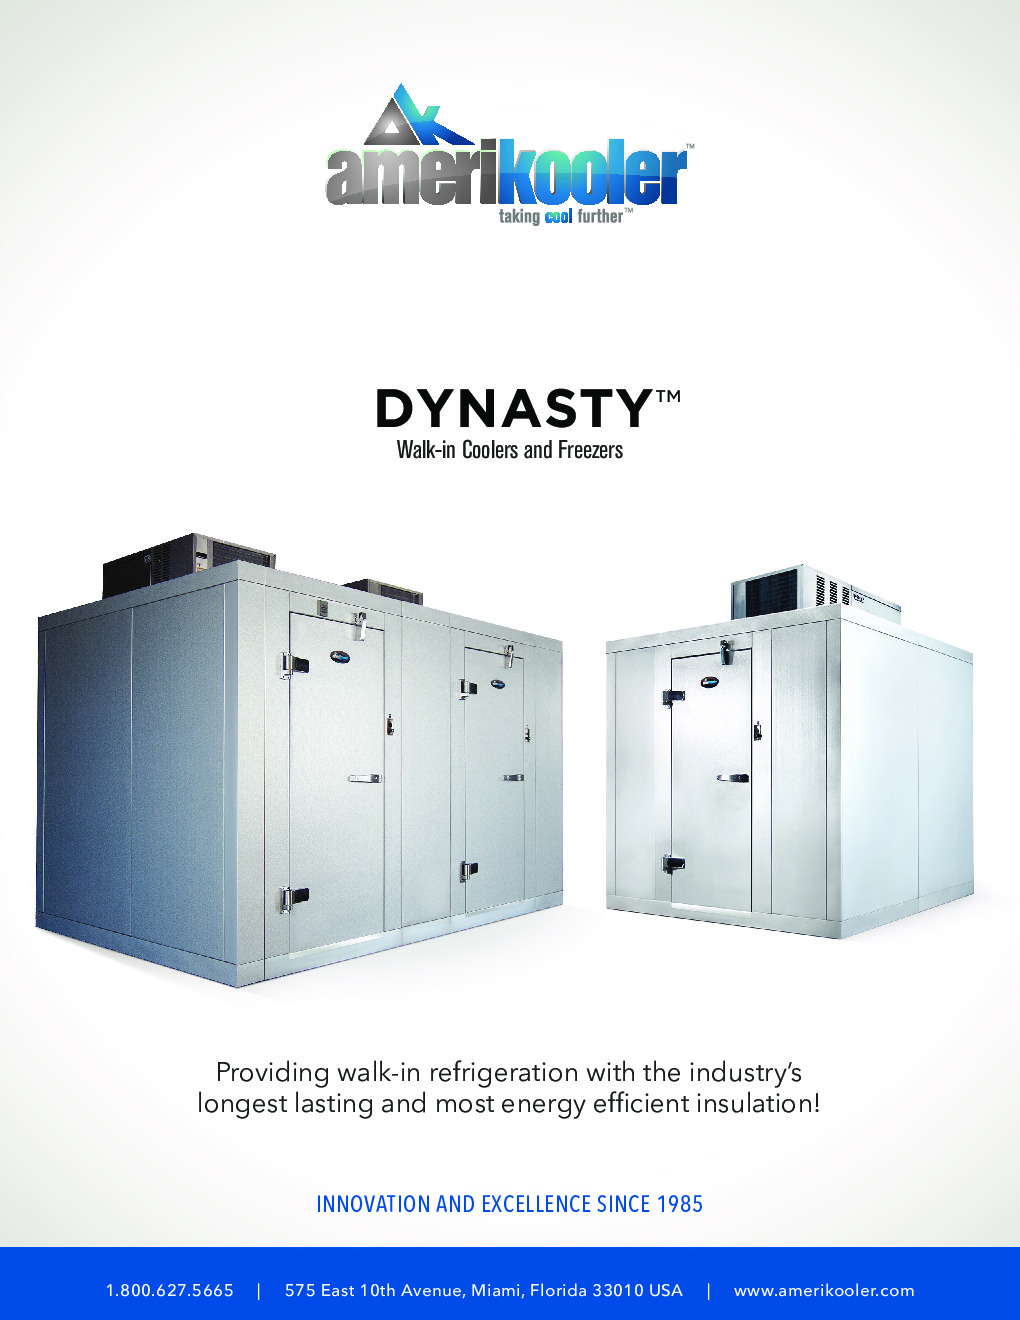 AmeriKooler DW101177N-4/7-RM 10' X 11' Walk-In Cooler, 7' L Cooler without Floor and 4' L Freezer, Remote